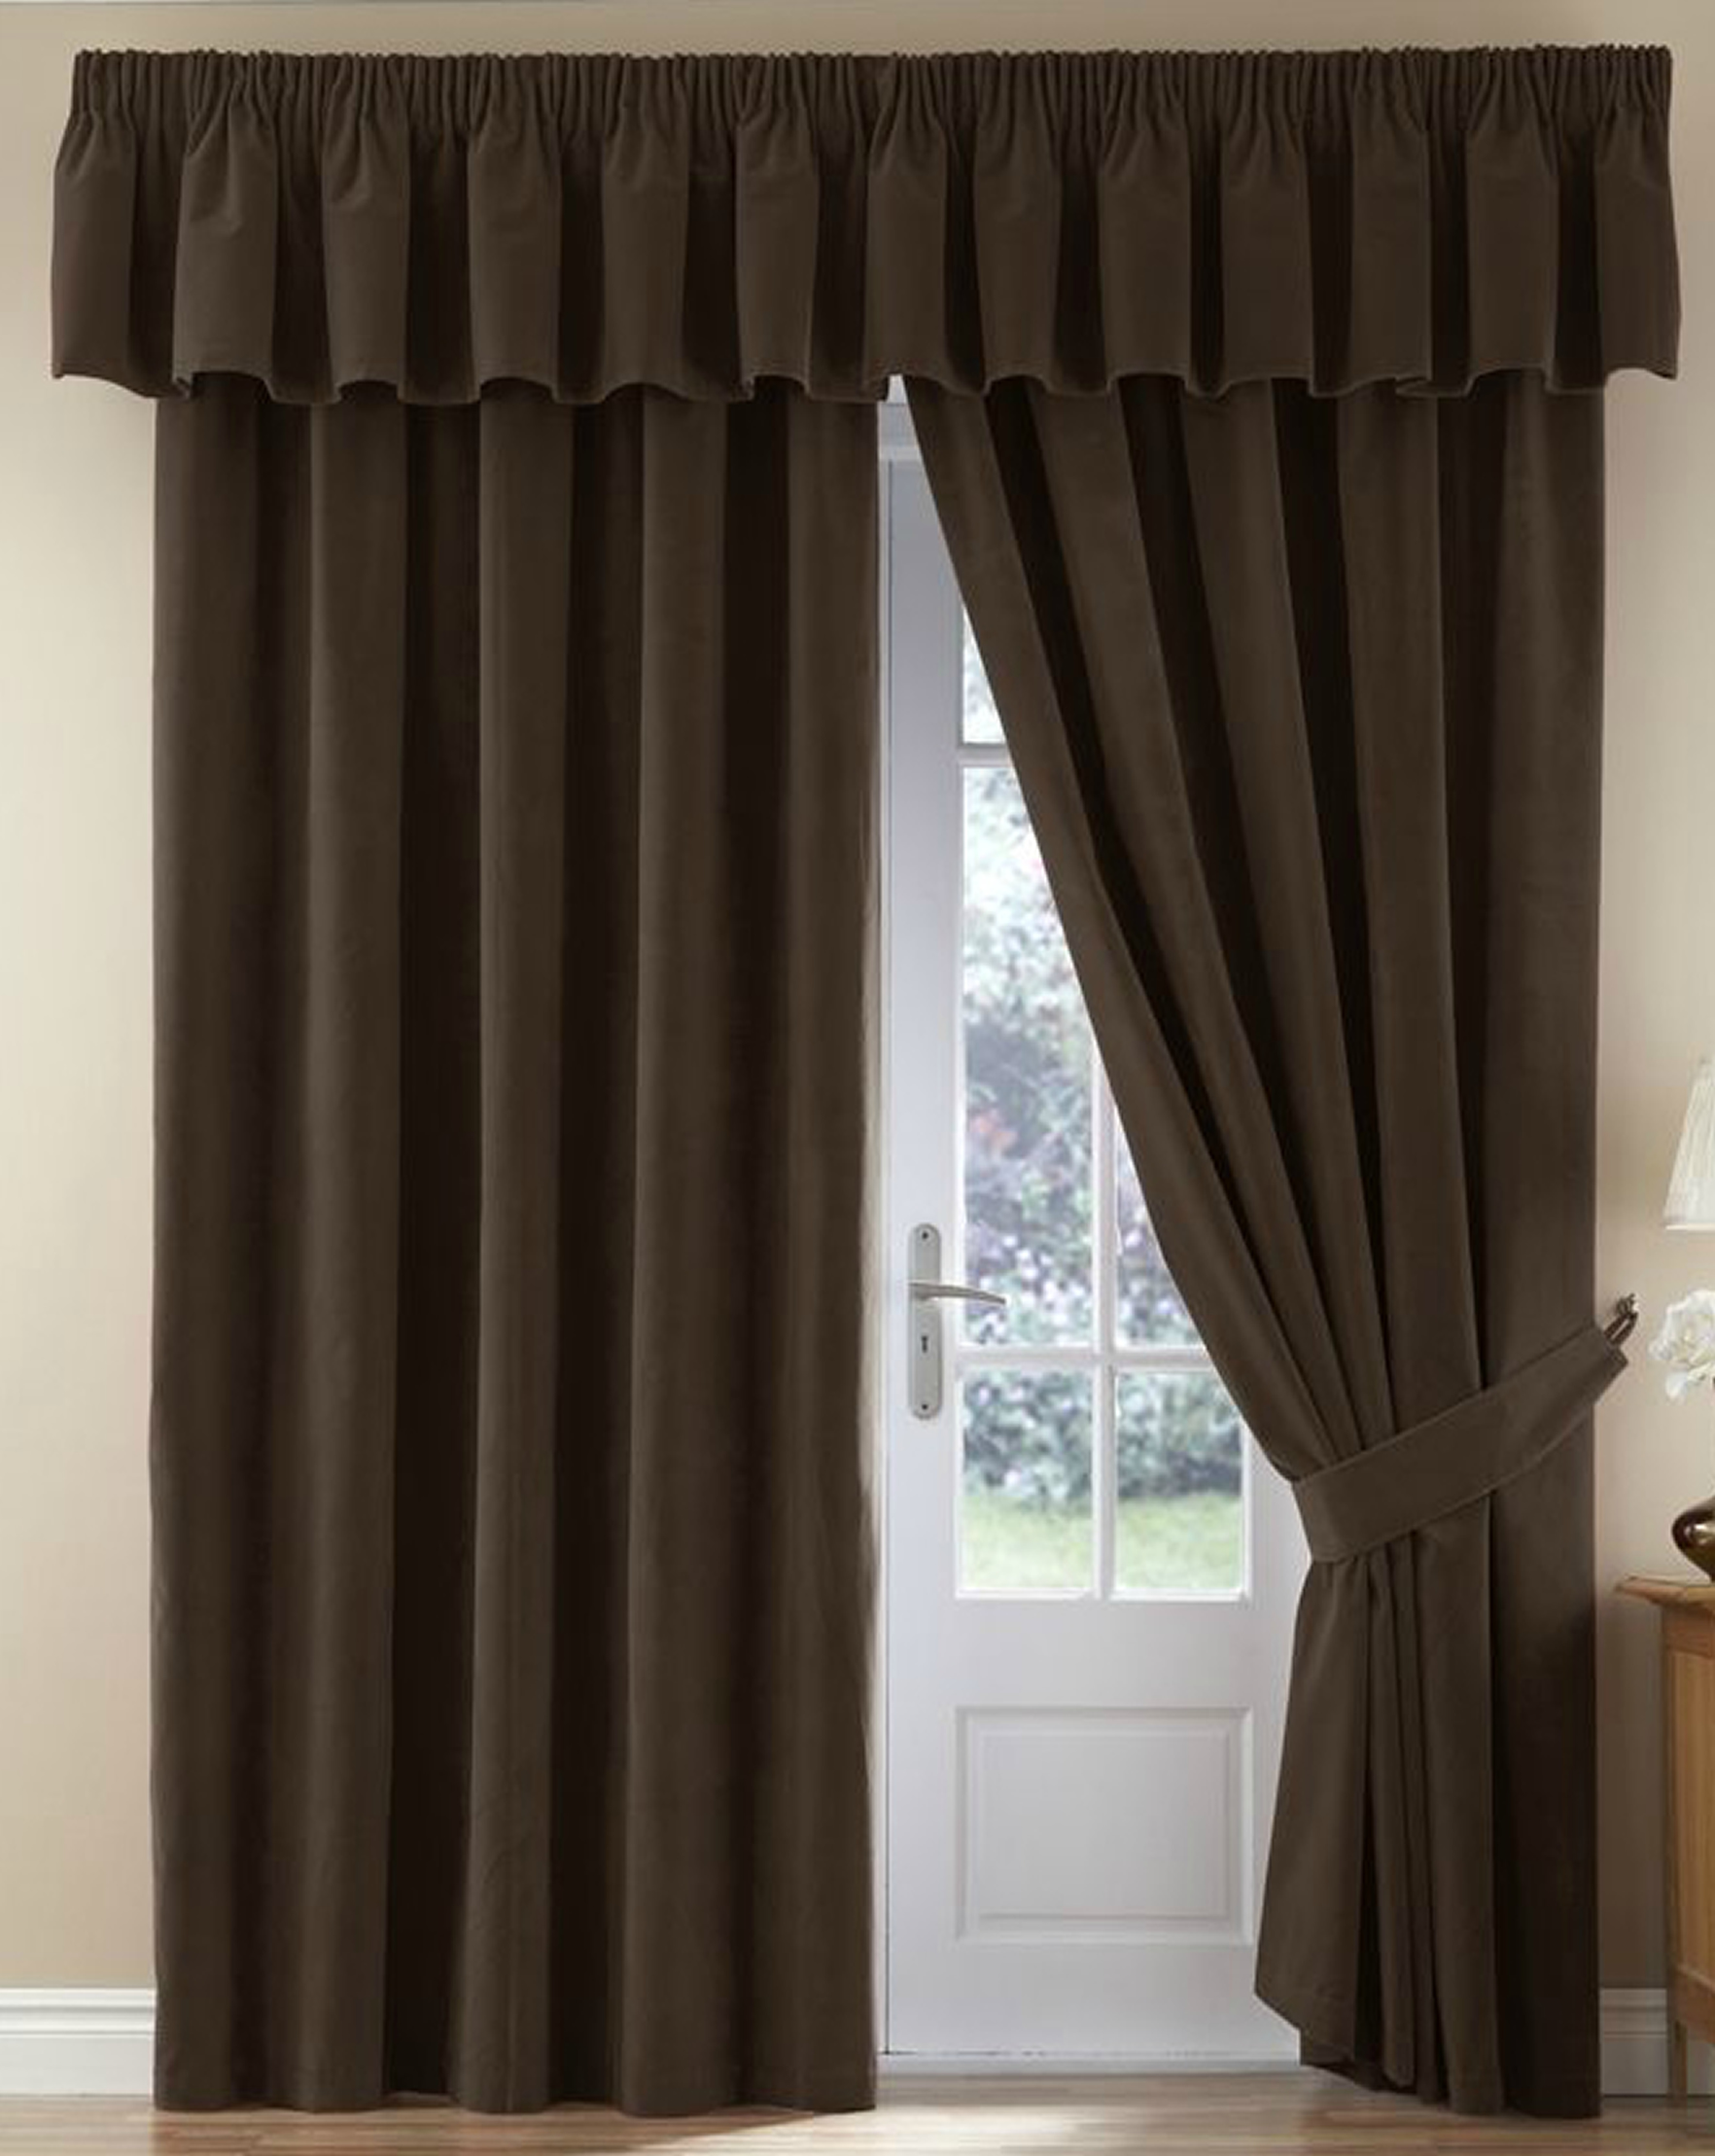 Simply Select The Appropriate Curtain Size And Colour From The Drop Down Box